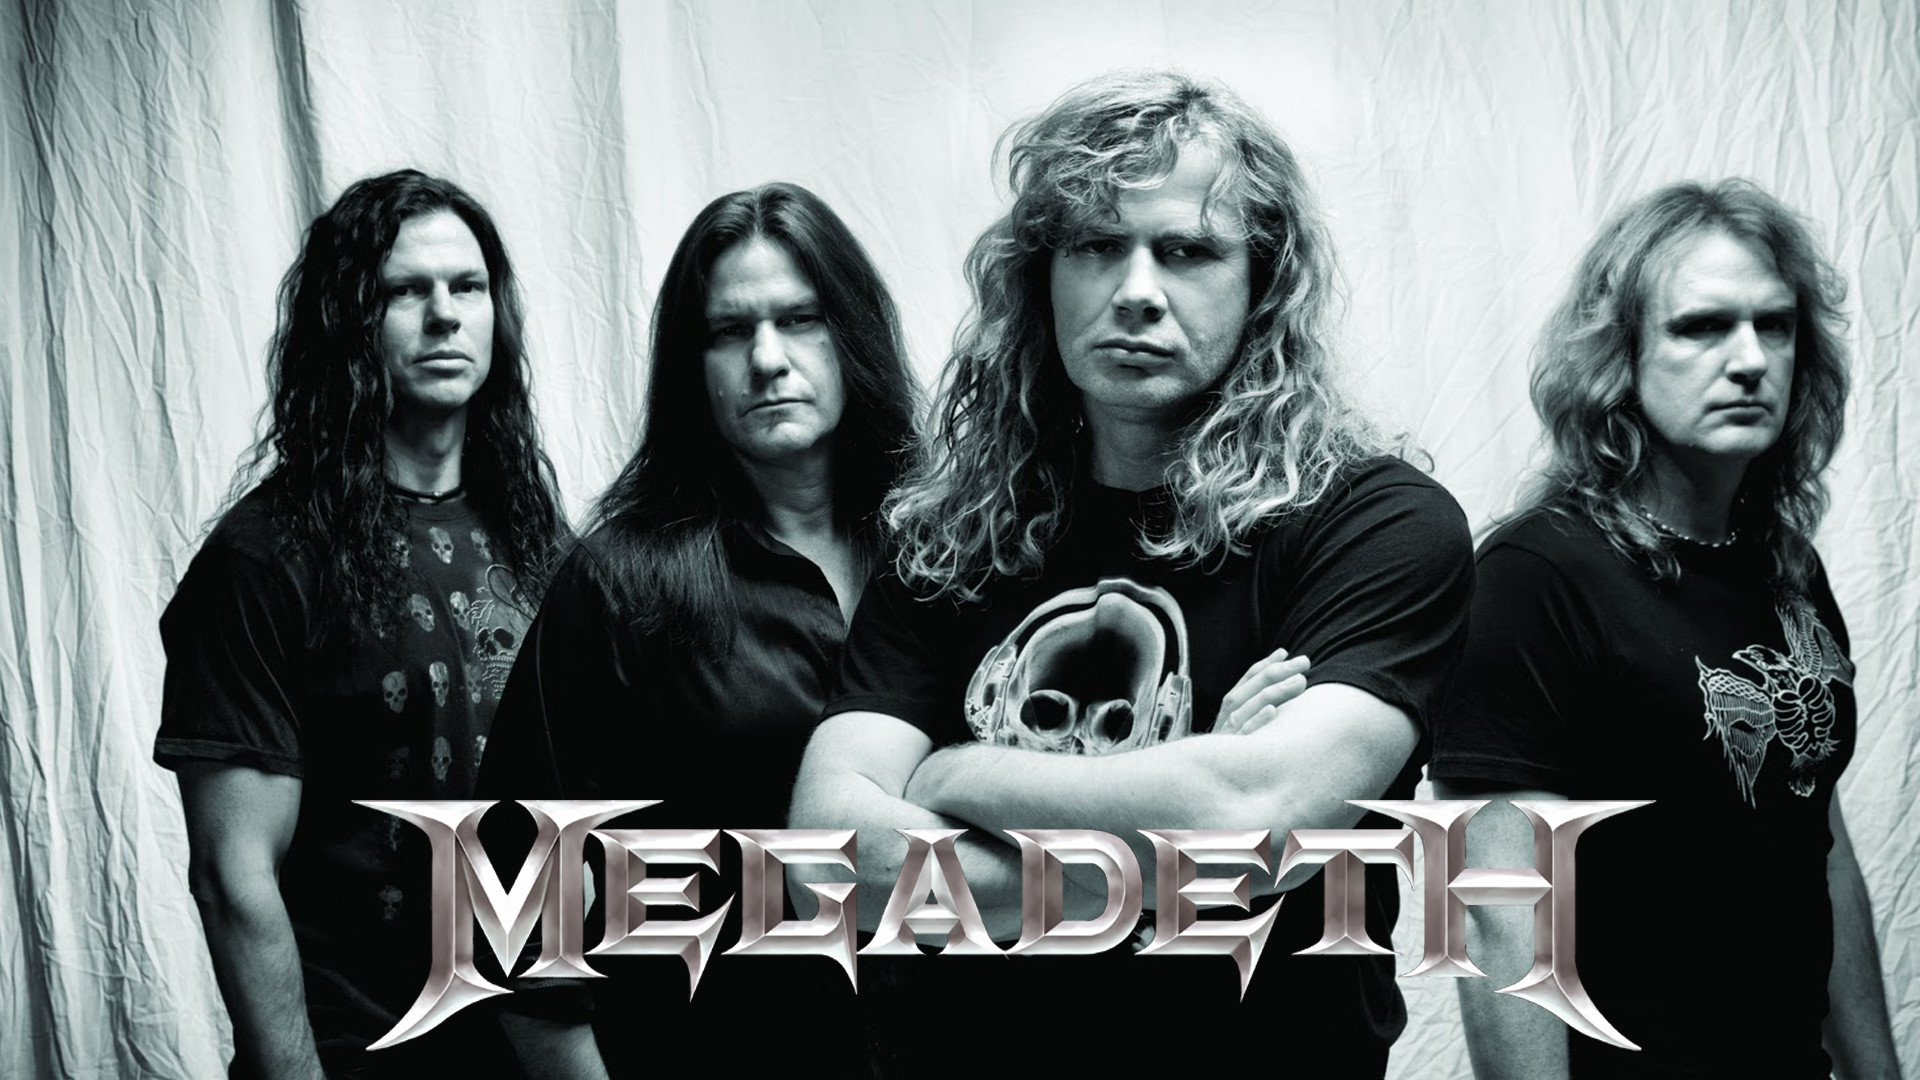 Res: 1920x1080, Megadeth bands groups heavy metal thrash hard rock Dave Mustaine wallpaper  |  | 25127 | WallpaperUP